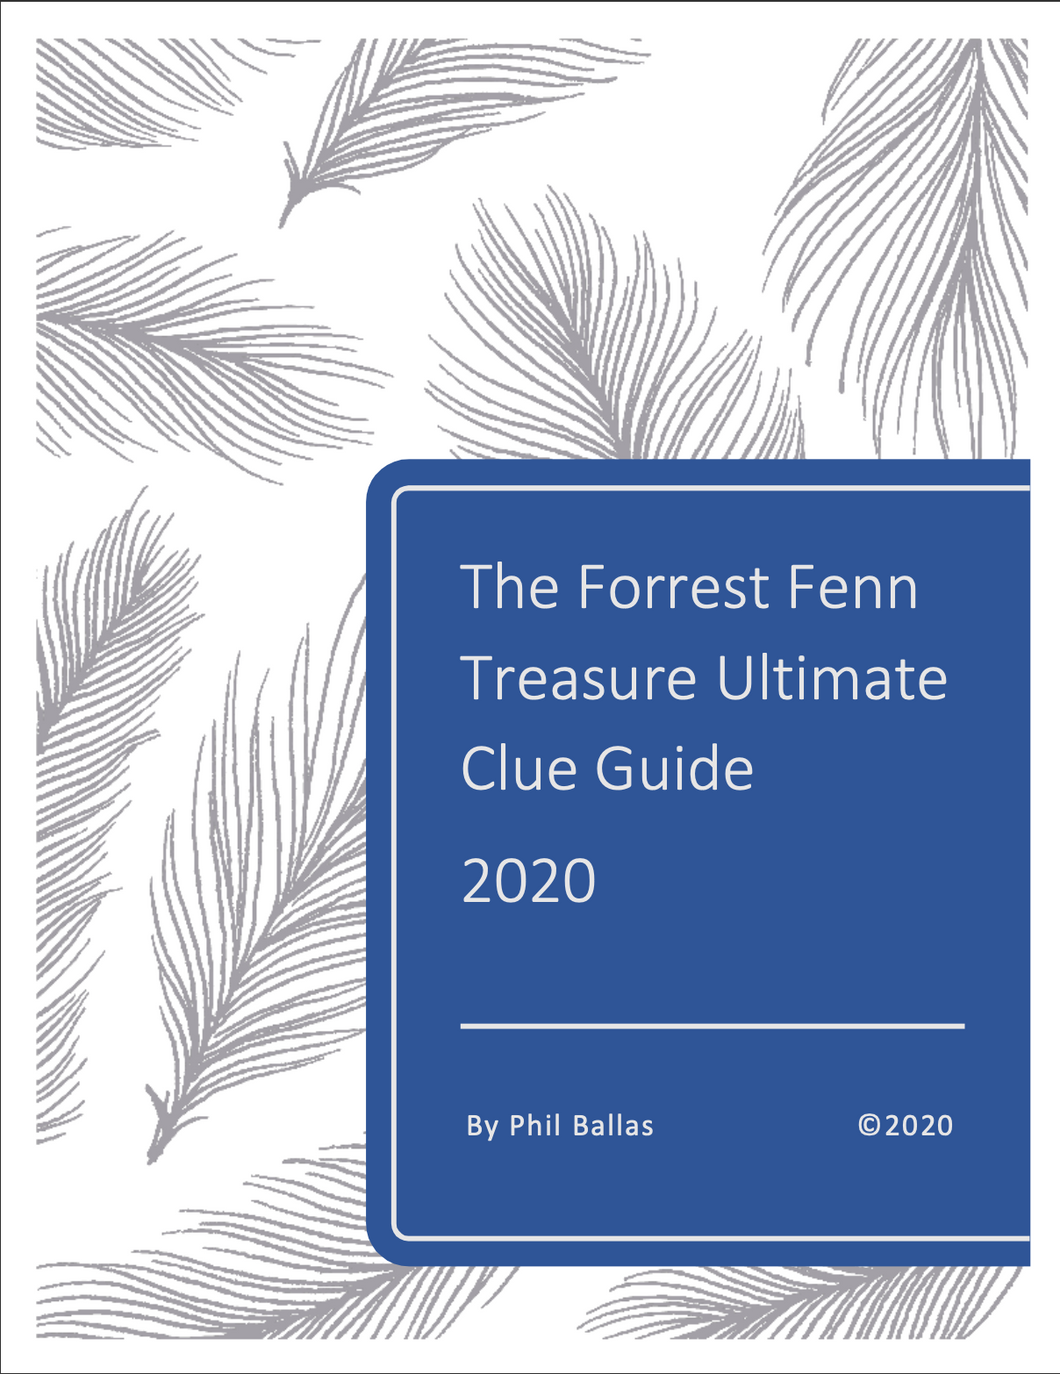 The Forrest Fenn Treasure Ultimate Clue Guide